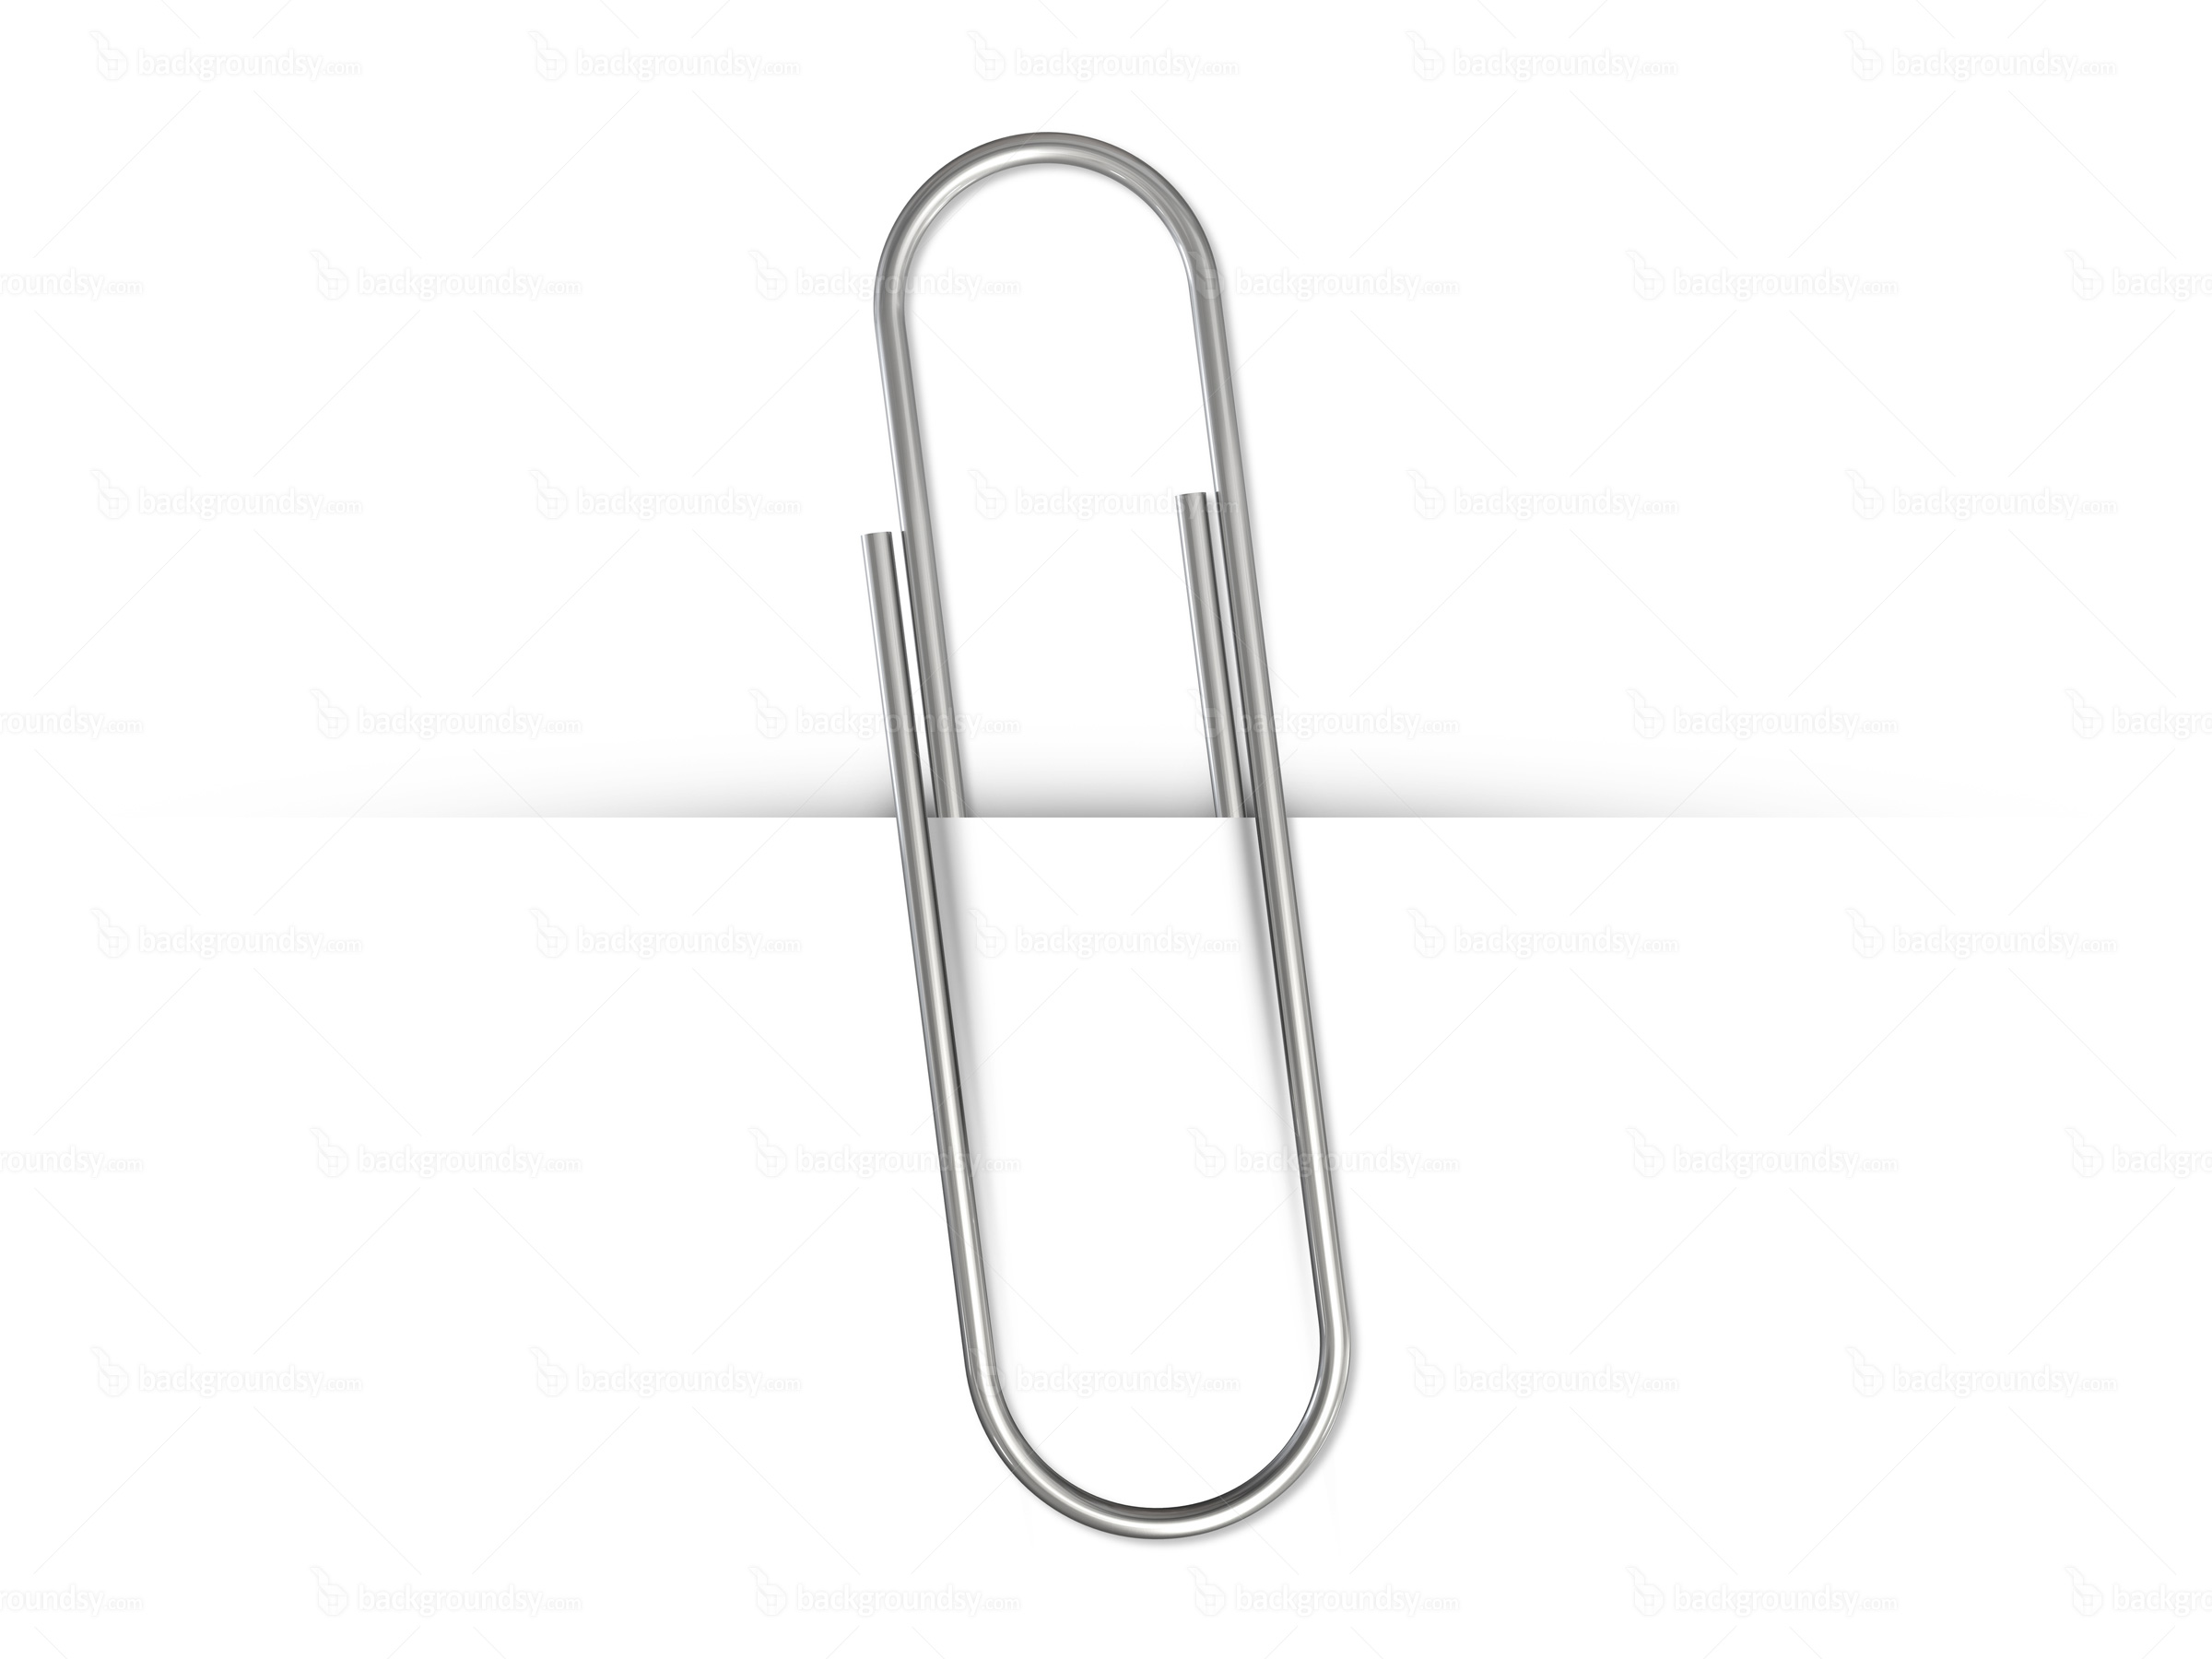 paperclip png - Google Search